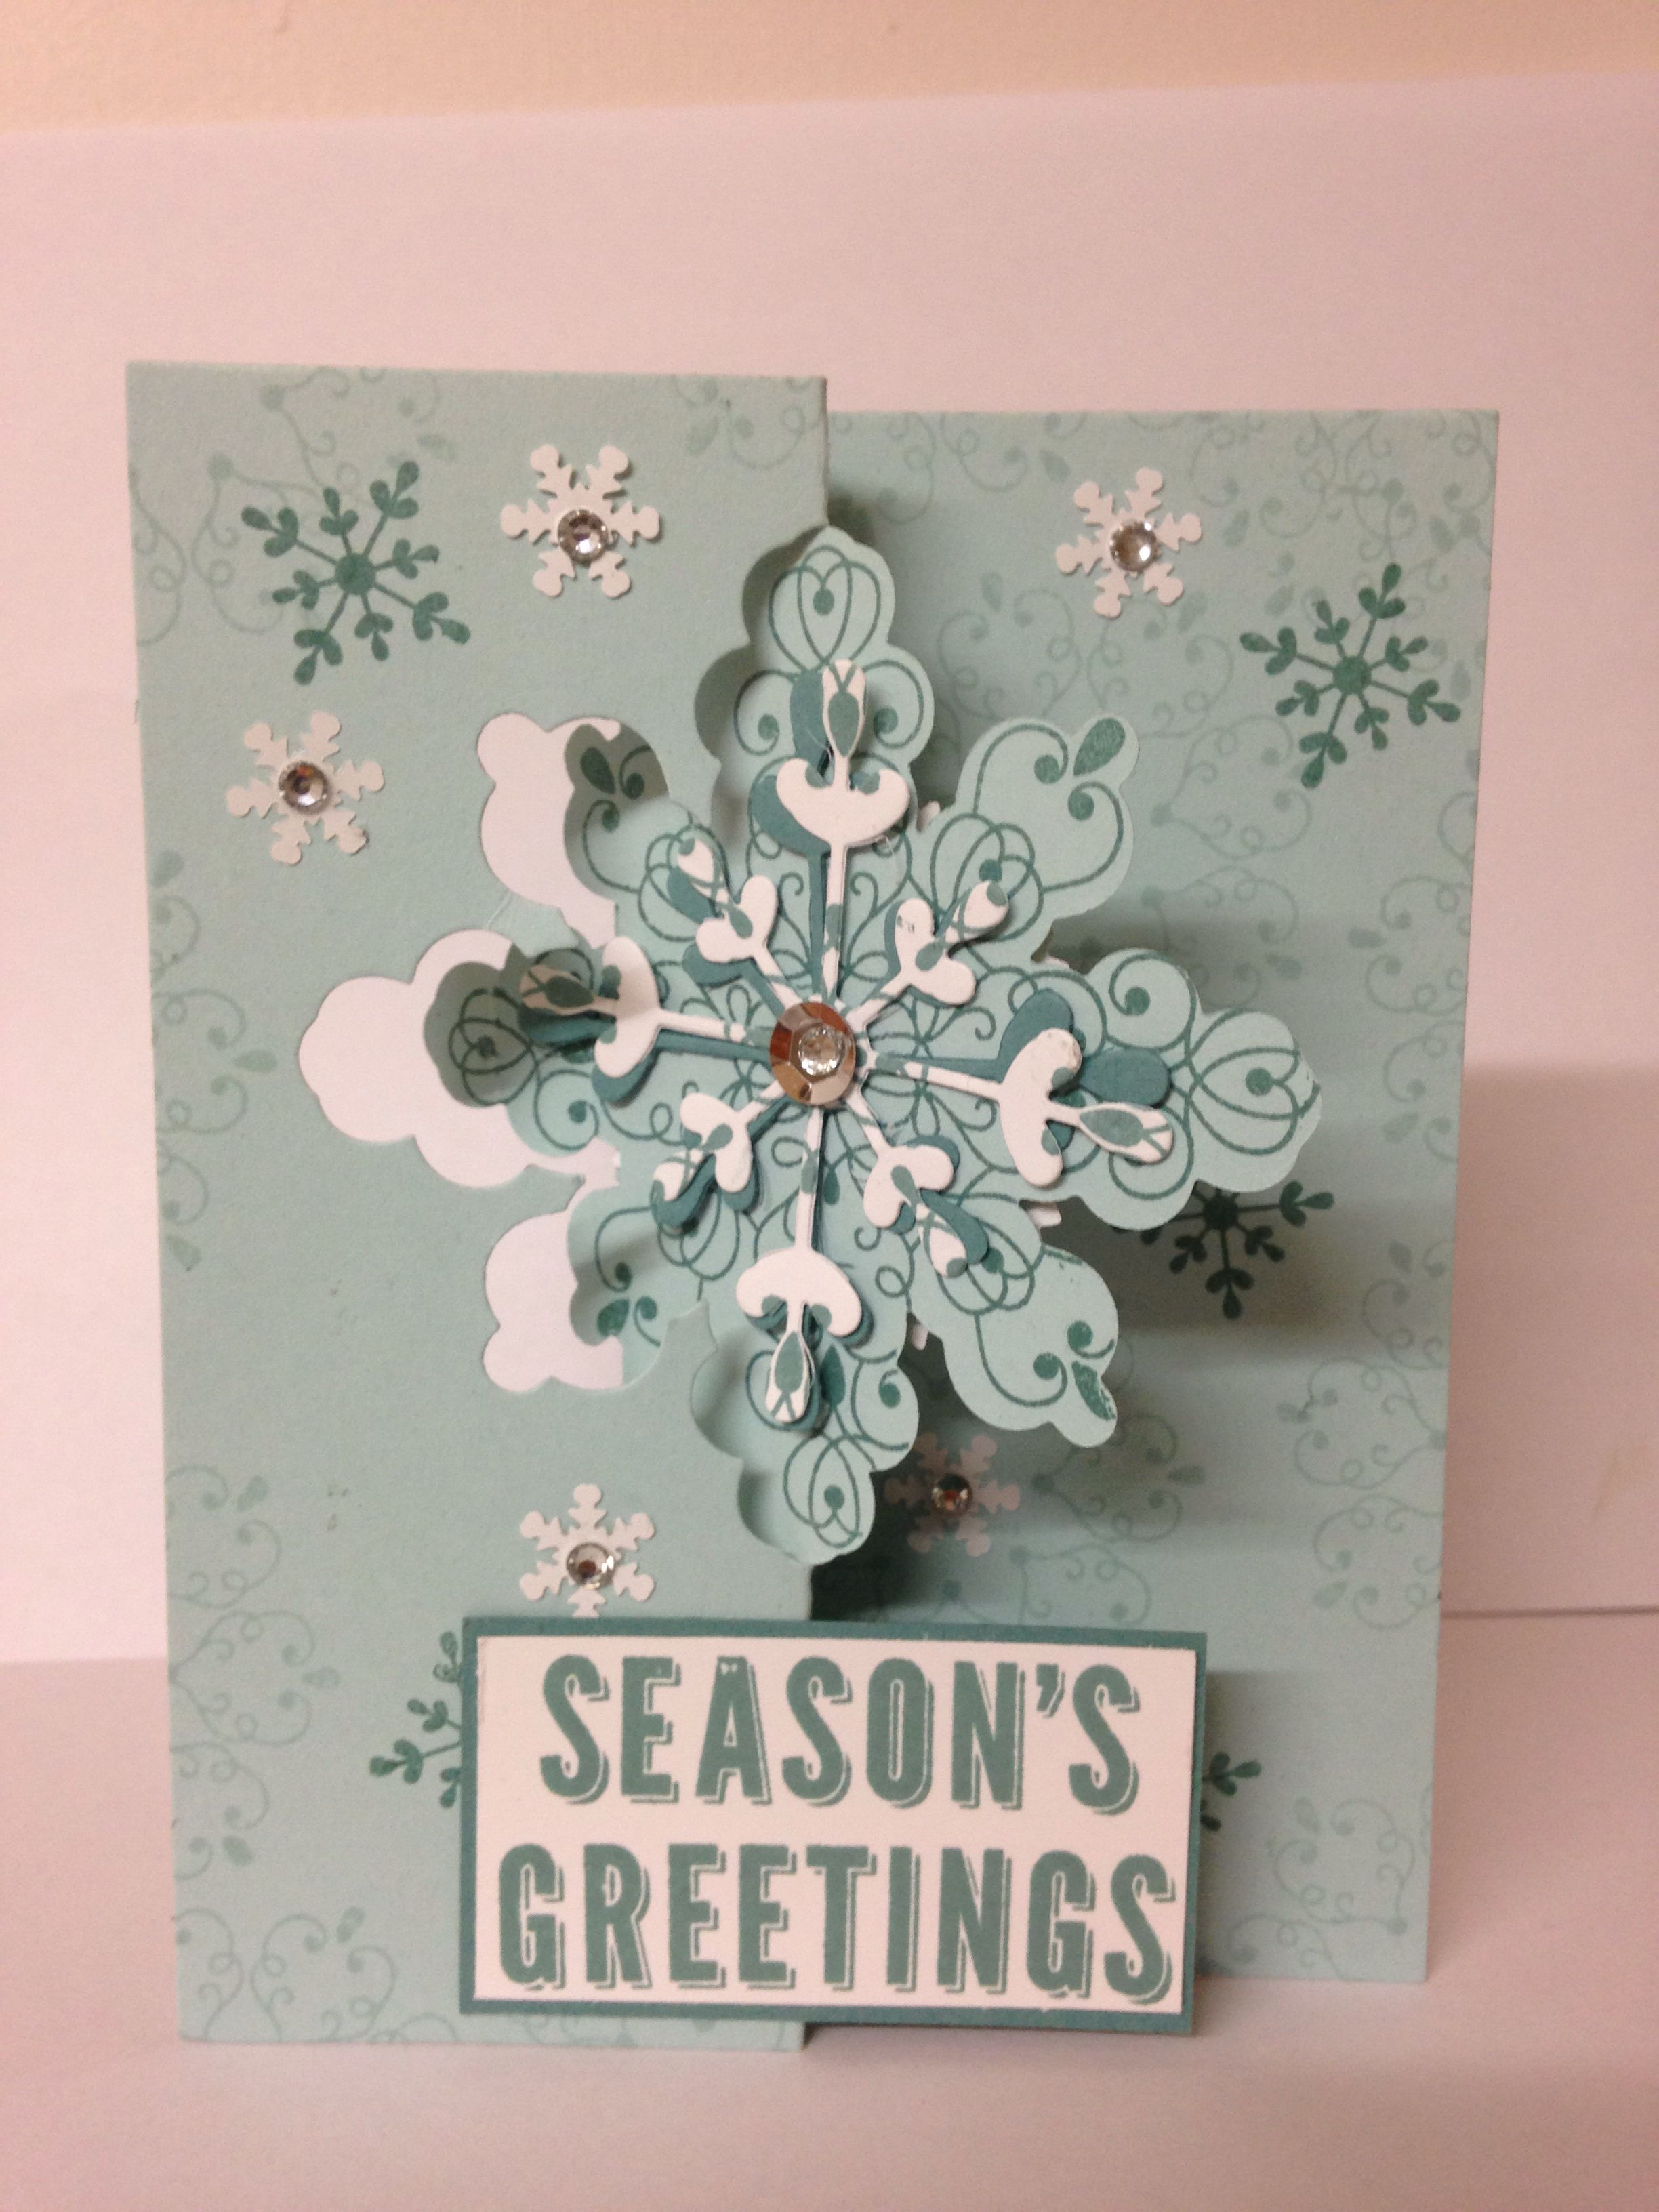 Stampin Up - Holiday Catalogue, Snowflake card thinlit dies and Matching Letterpress winter Stamp Set on soft sky card stock